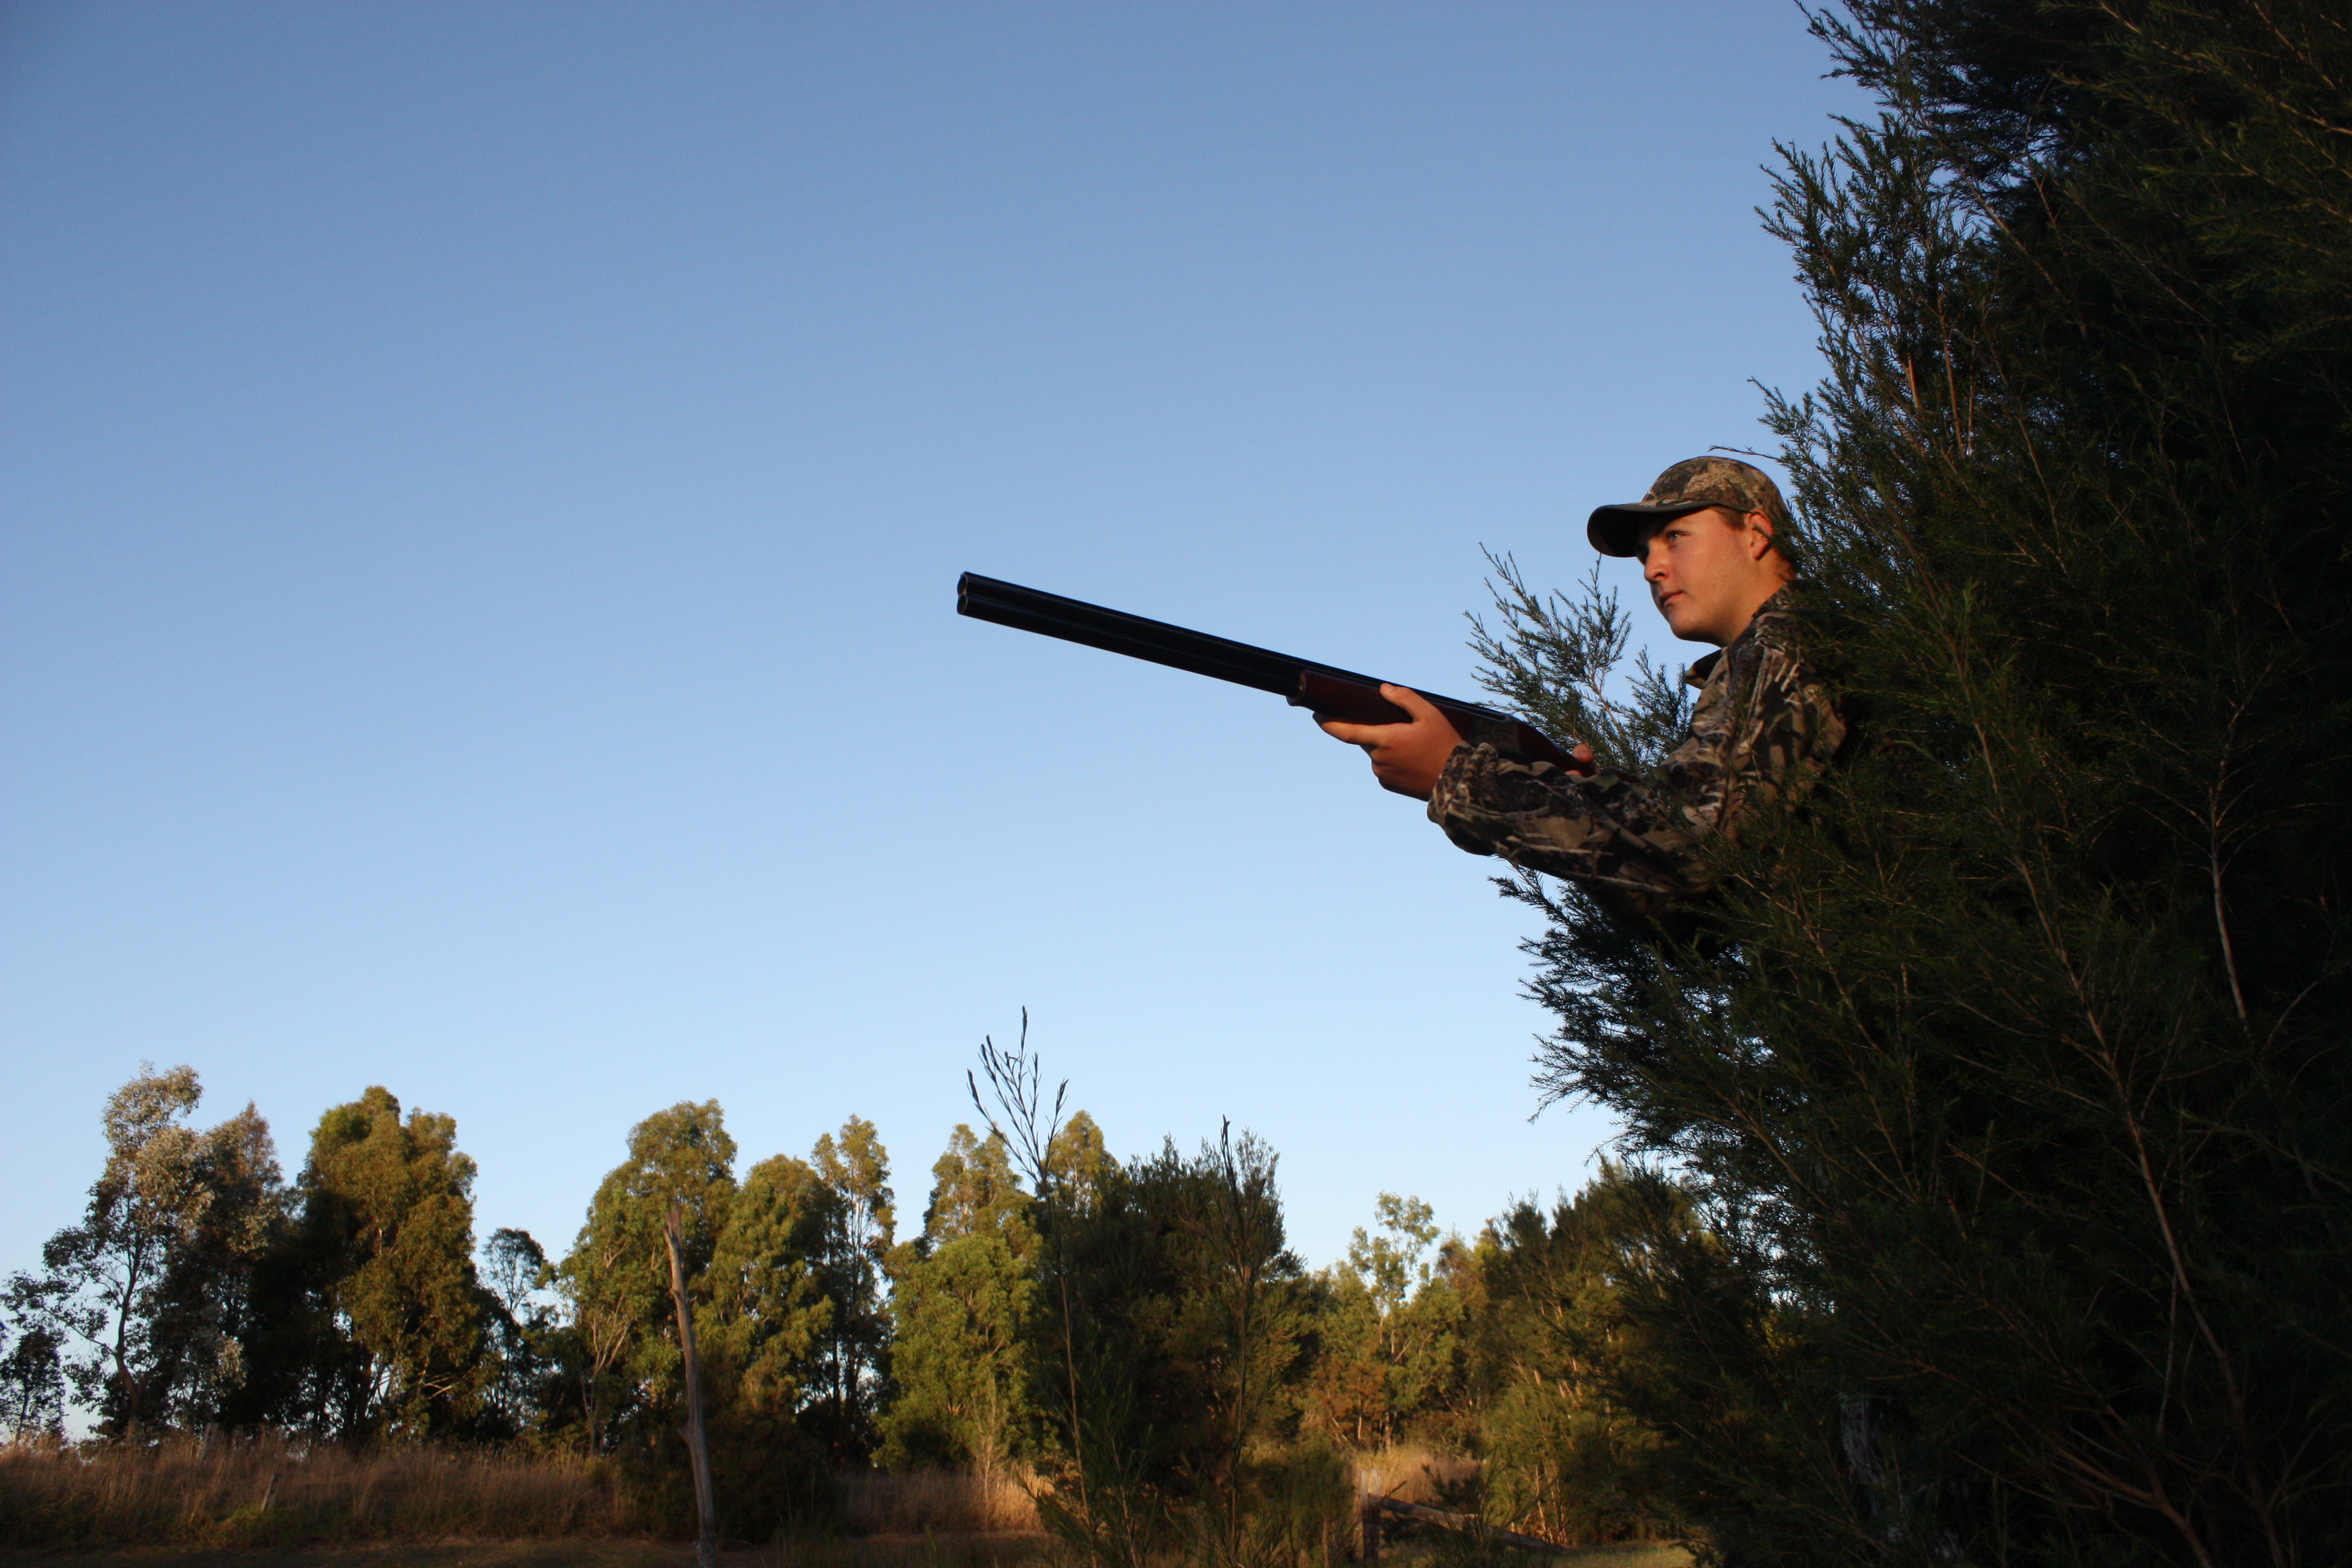 Duck season restrictions anger hunters